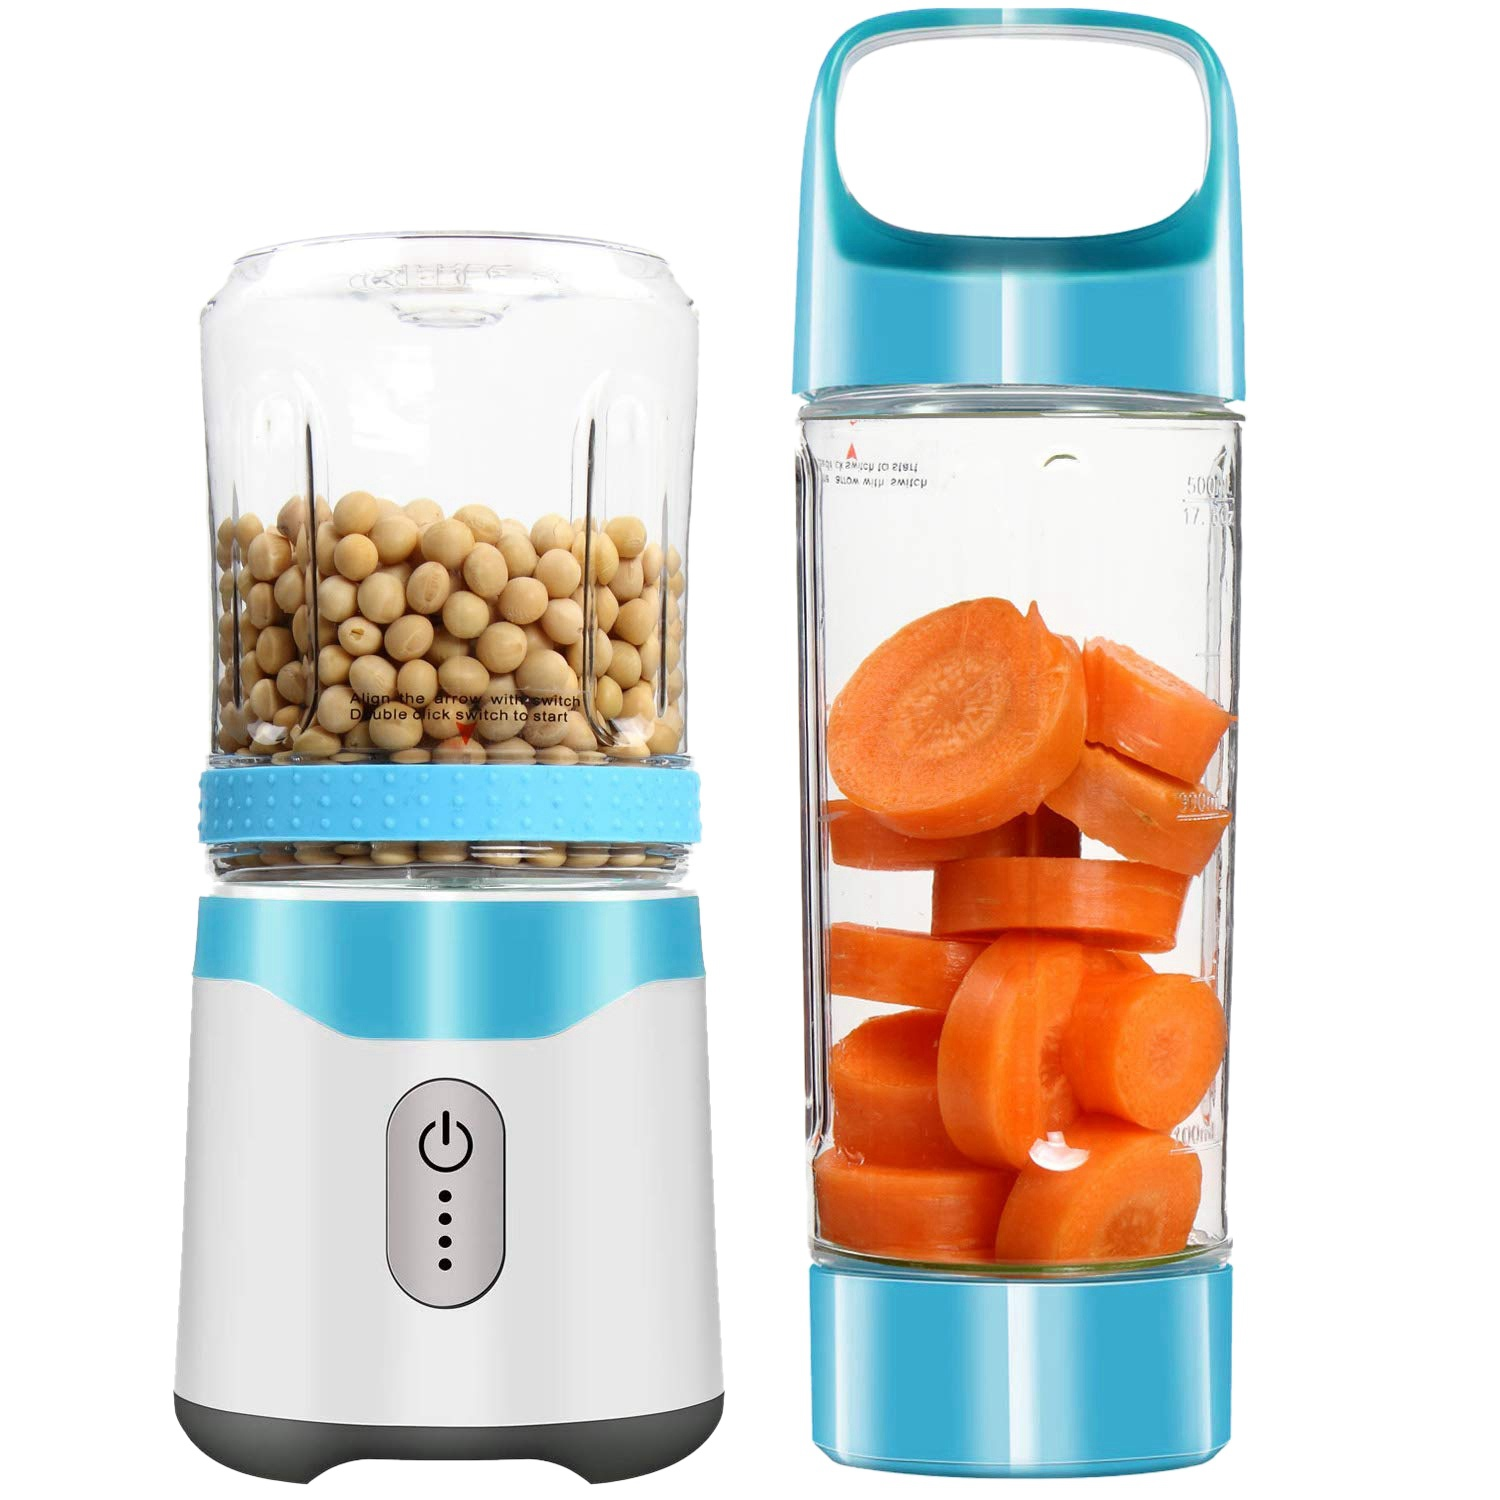 Personal Blender,Portable Blender Usb Juice Blender Rechargeable Travel Juice Blender For Shakes And Smoothies Powerful Six BlPersonal Blender,Portable Blender Usb Juice Blender Rechargeable Travel Juice Blender For Shakes And Smoothies Powerful Six Bl